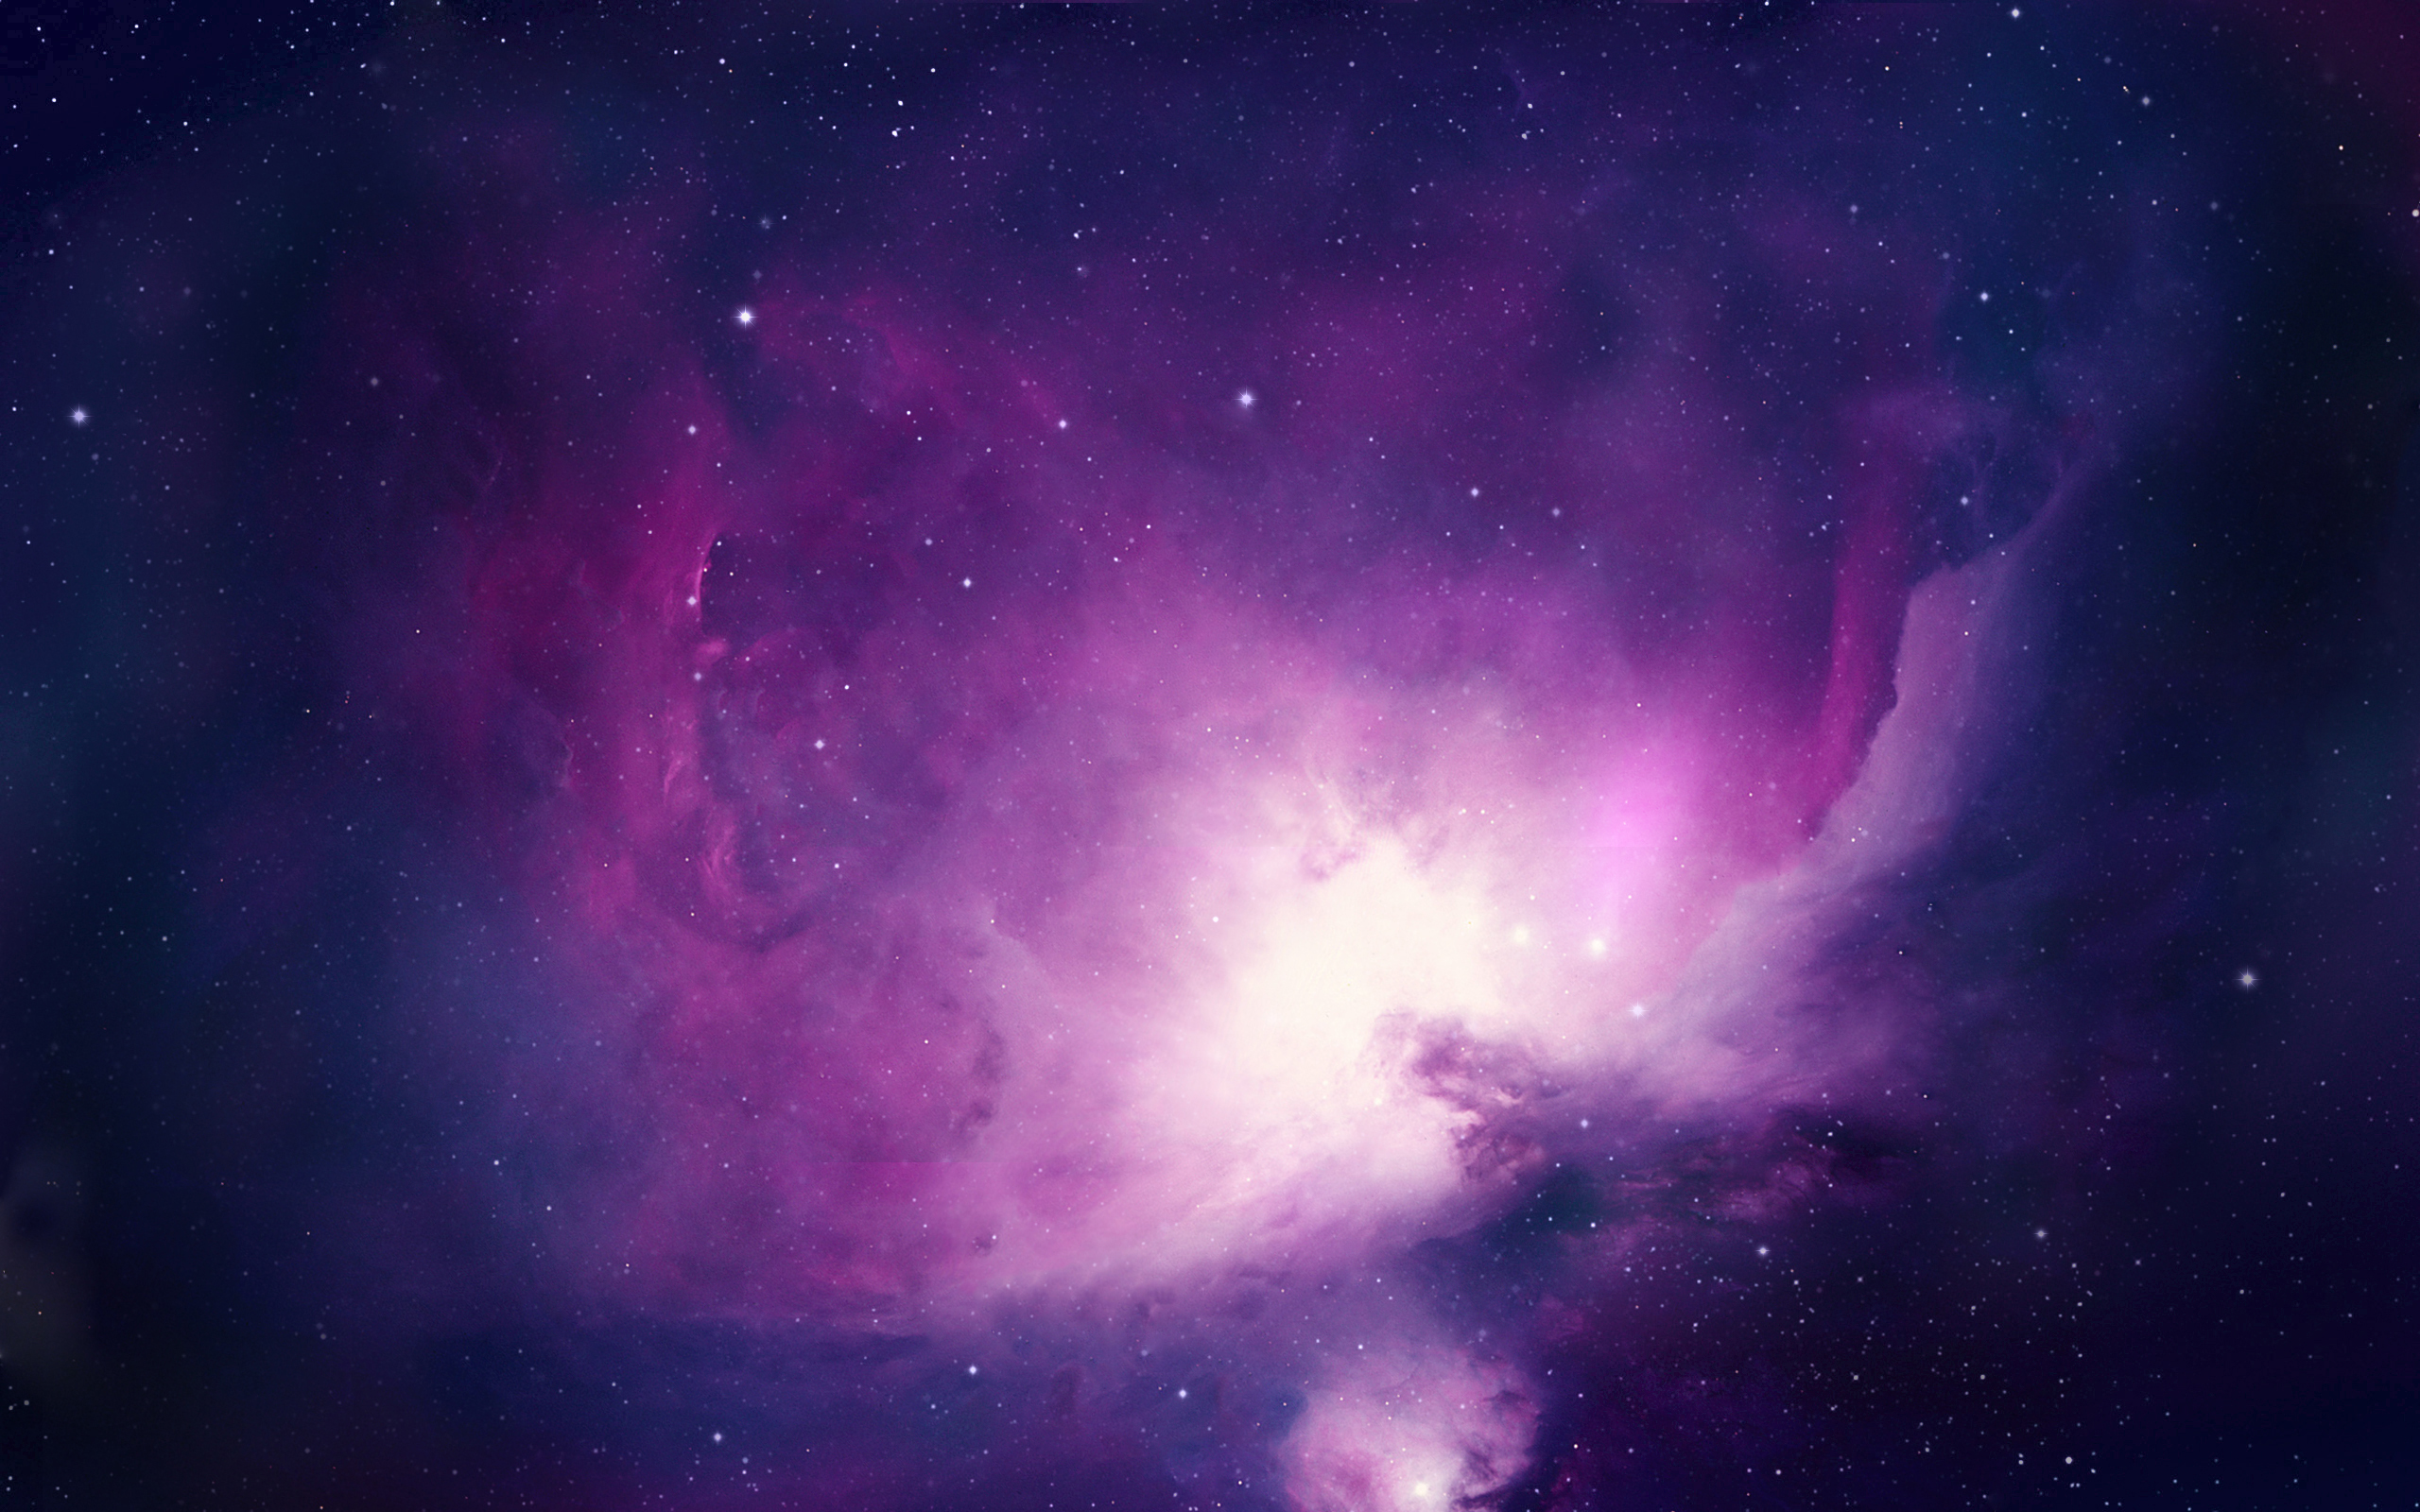 Cool Mac OS Purple Computer Wallpaper Wallpaper with 2560x1600 2560x1600